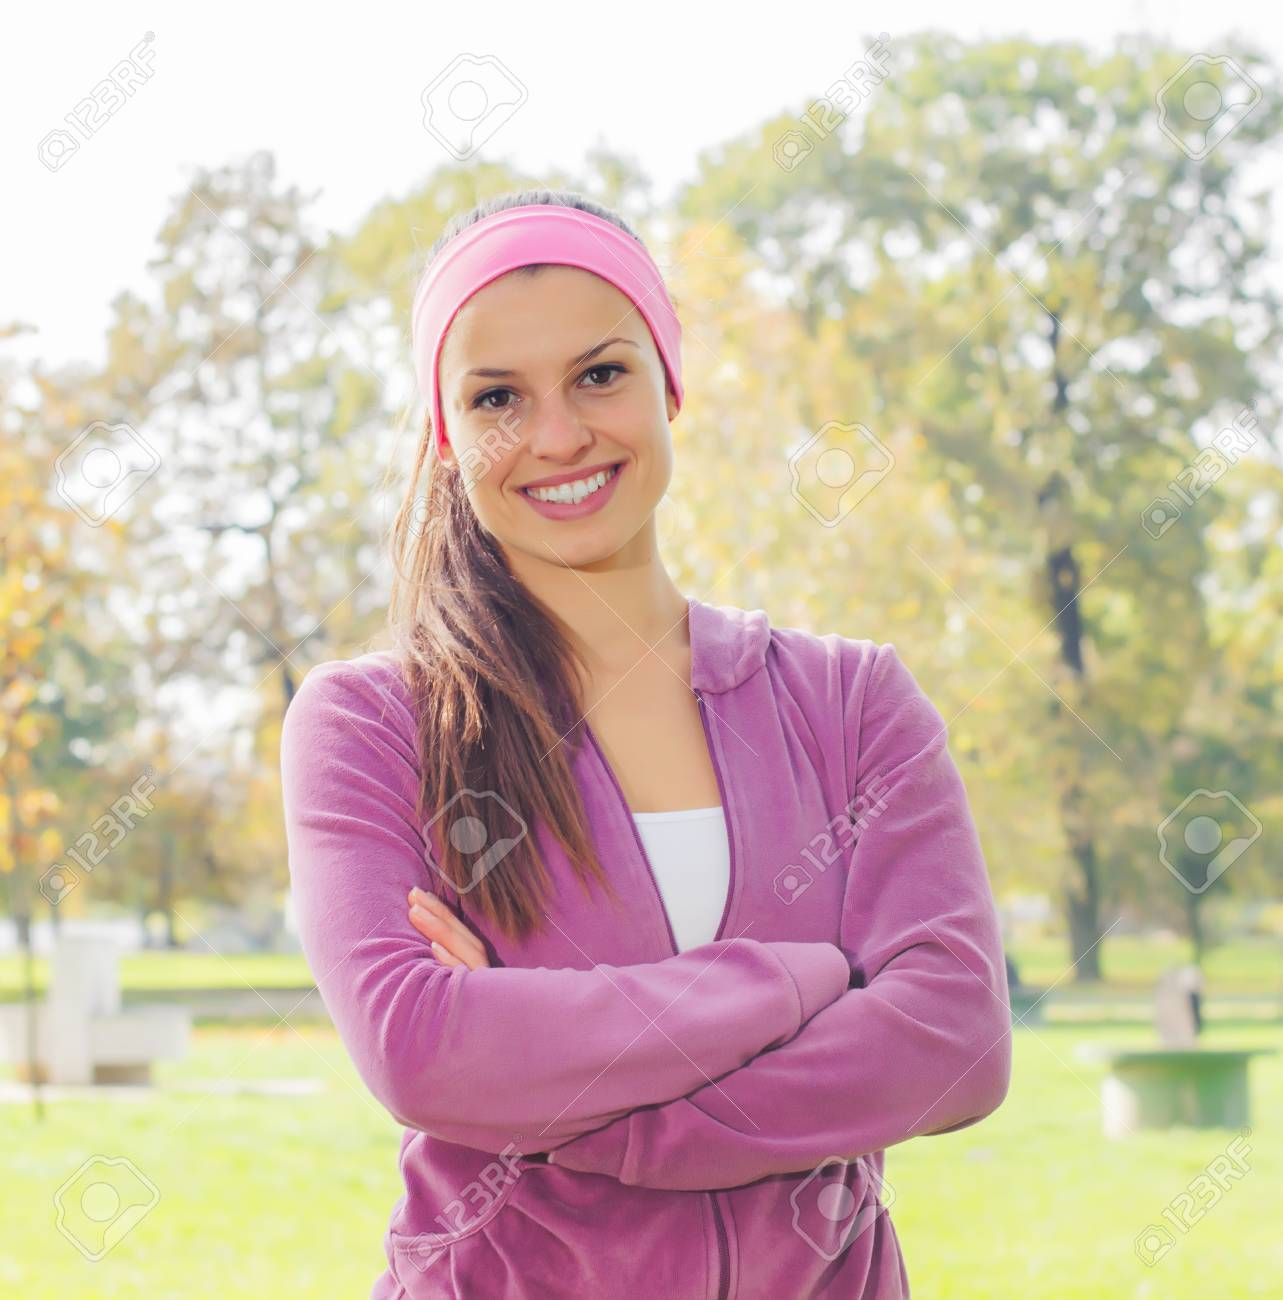 Fitness Smiling Young Woman, Portrait Outdoor, Fresh happy beautiful sporty female in the park, Healthy lifestyle Stock Photo - 47990640